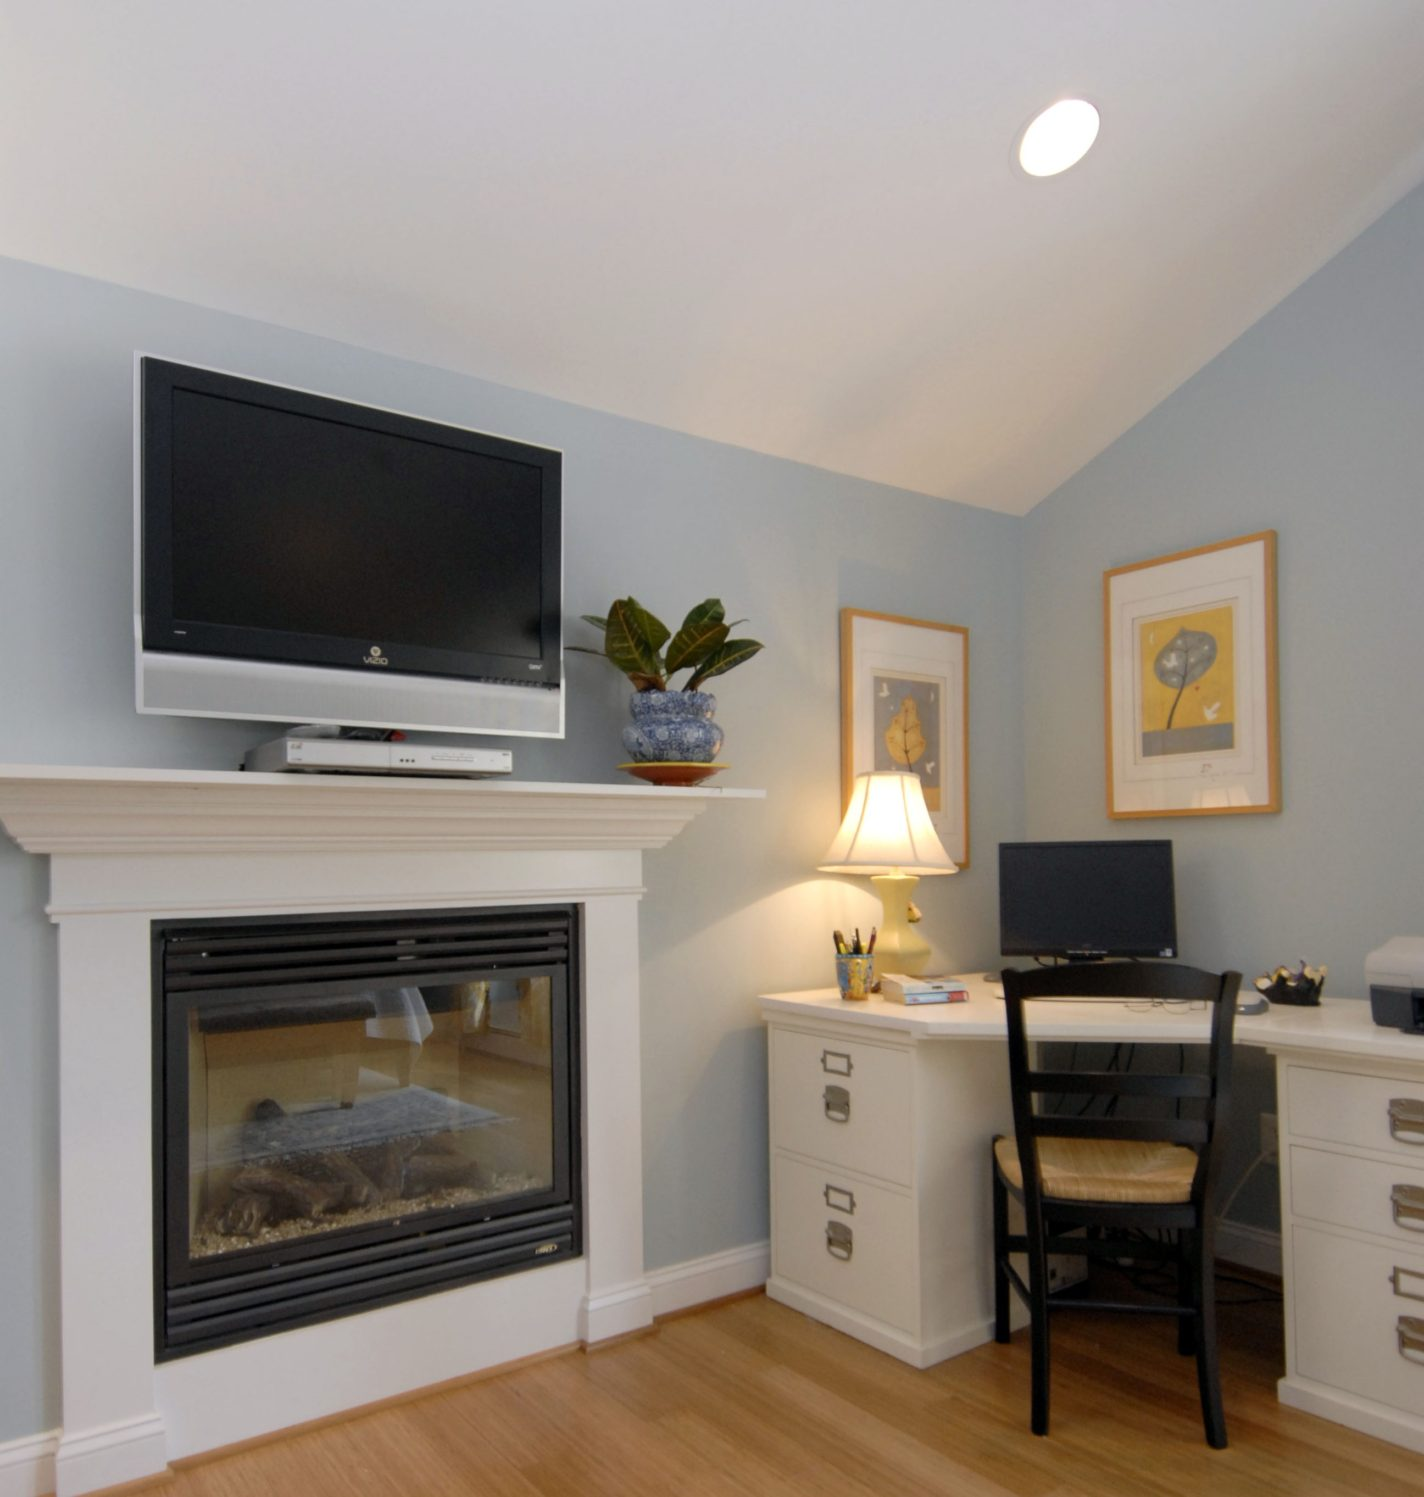 Fairfax, VA bedroom attic addition with fireplace office space